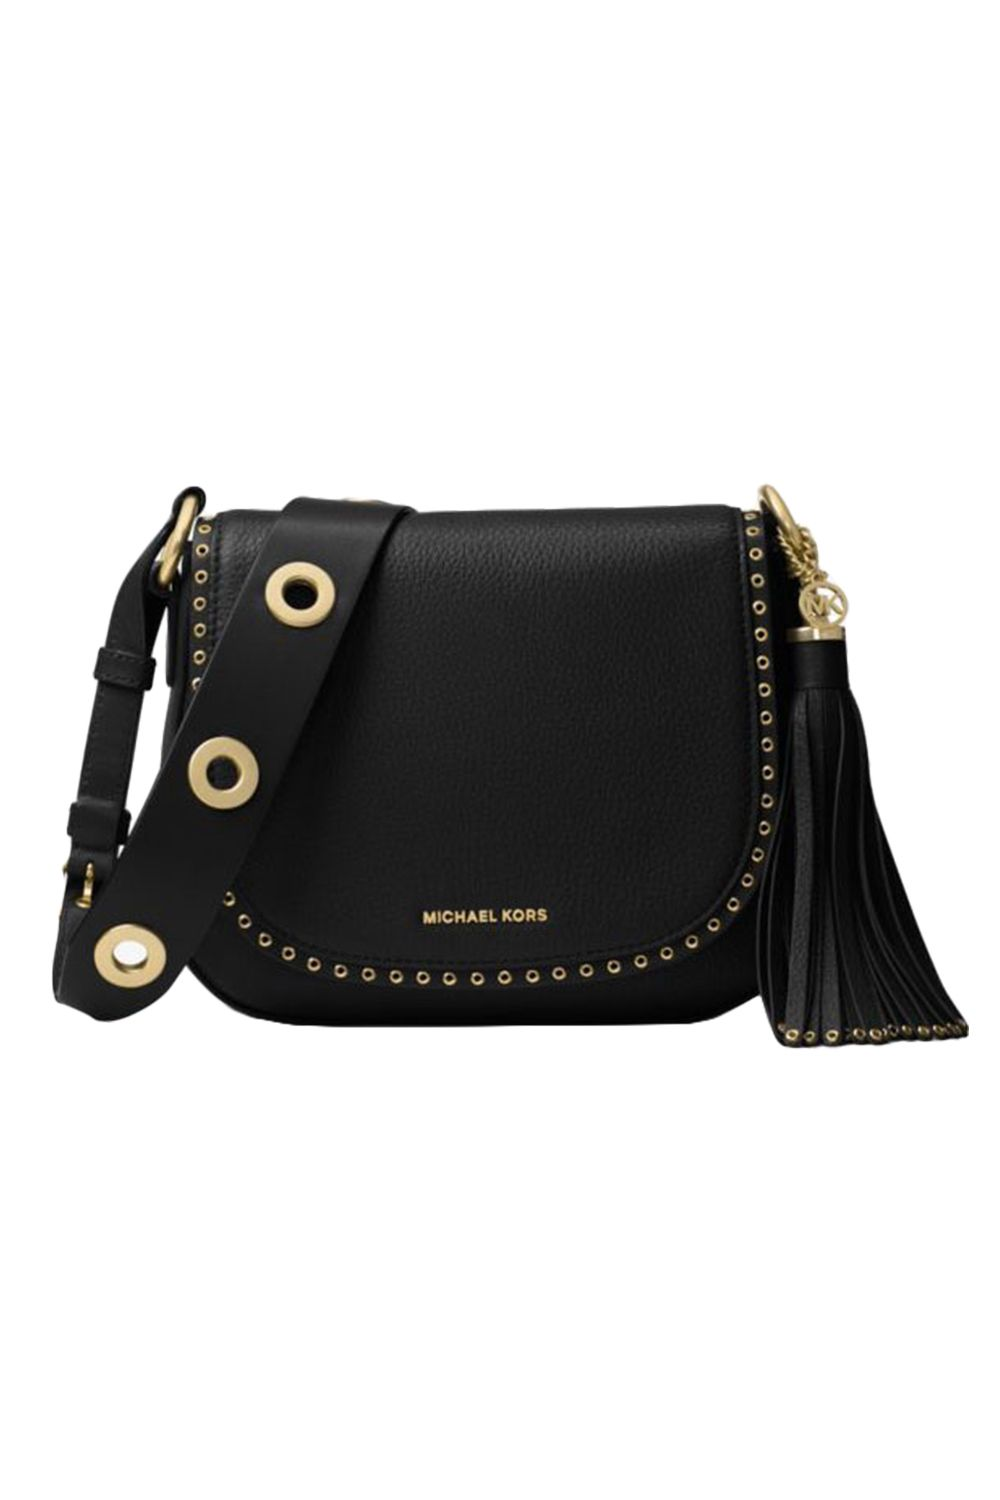 "<p>An all-American leather saddle bag is a piece worth investing in. This rugged-in-a-city-slicker-way cross-body purse may have its roots in the wild west, but it'll look so chic in any downtown cafe. Wear it with anything—from jeans to dresses—this is a bag for life. <em data-redactor-tag=""em"" data-verified=""redactor"">$388, </em><a href=""http://www.michaelkors.com/brooklyn-medium-leather-saddlebag/_/R-US_30F6ABNM8L?No=1&color=0001&isTrends=true"" target=""_blank""><em data-redactor-tag=""em"" data-verified=""redactor"">michaelkors.com</em></a></p>"